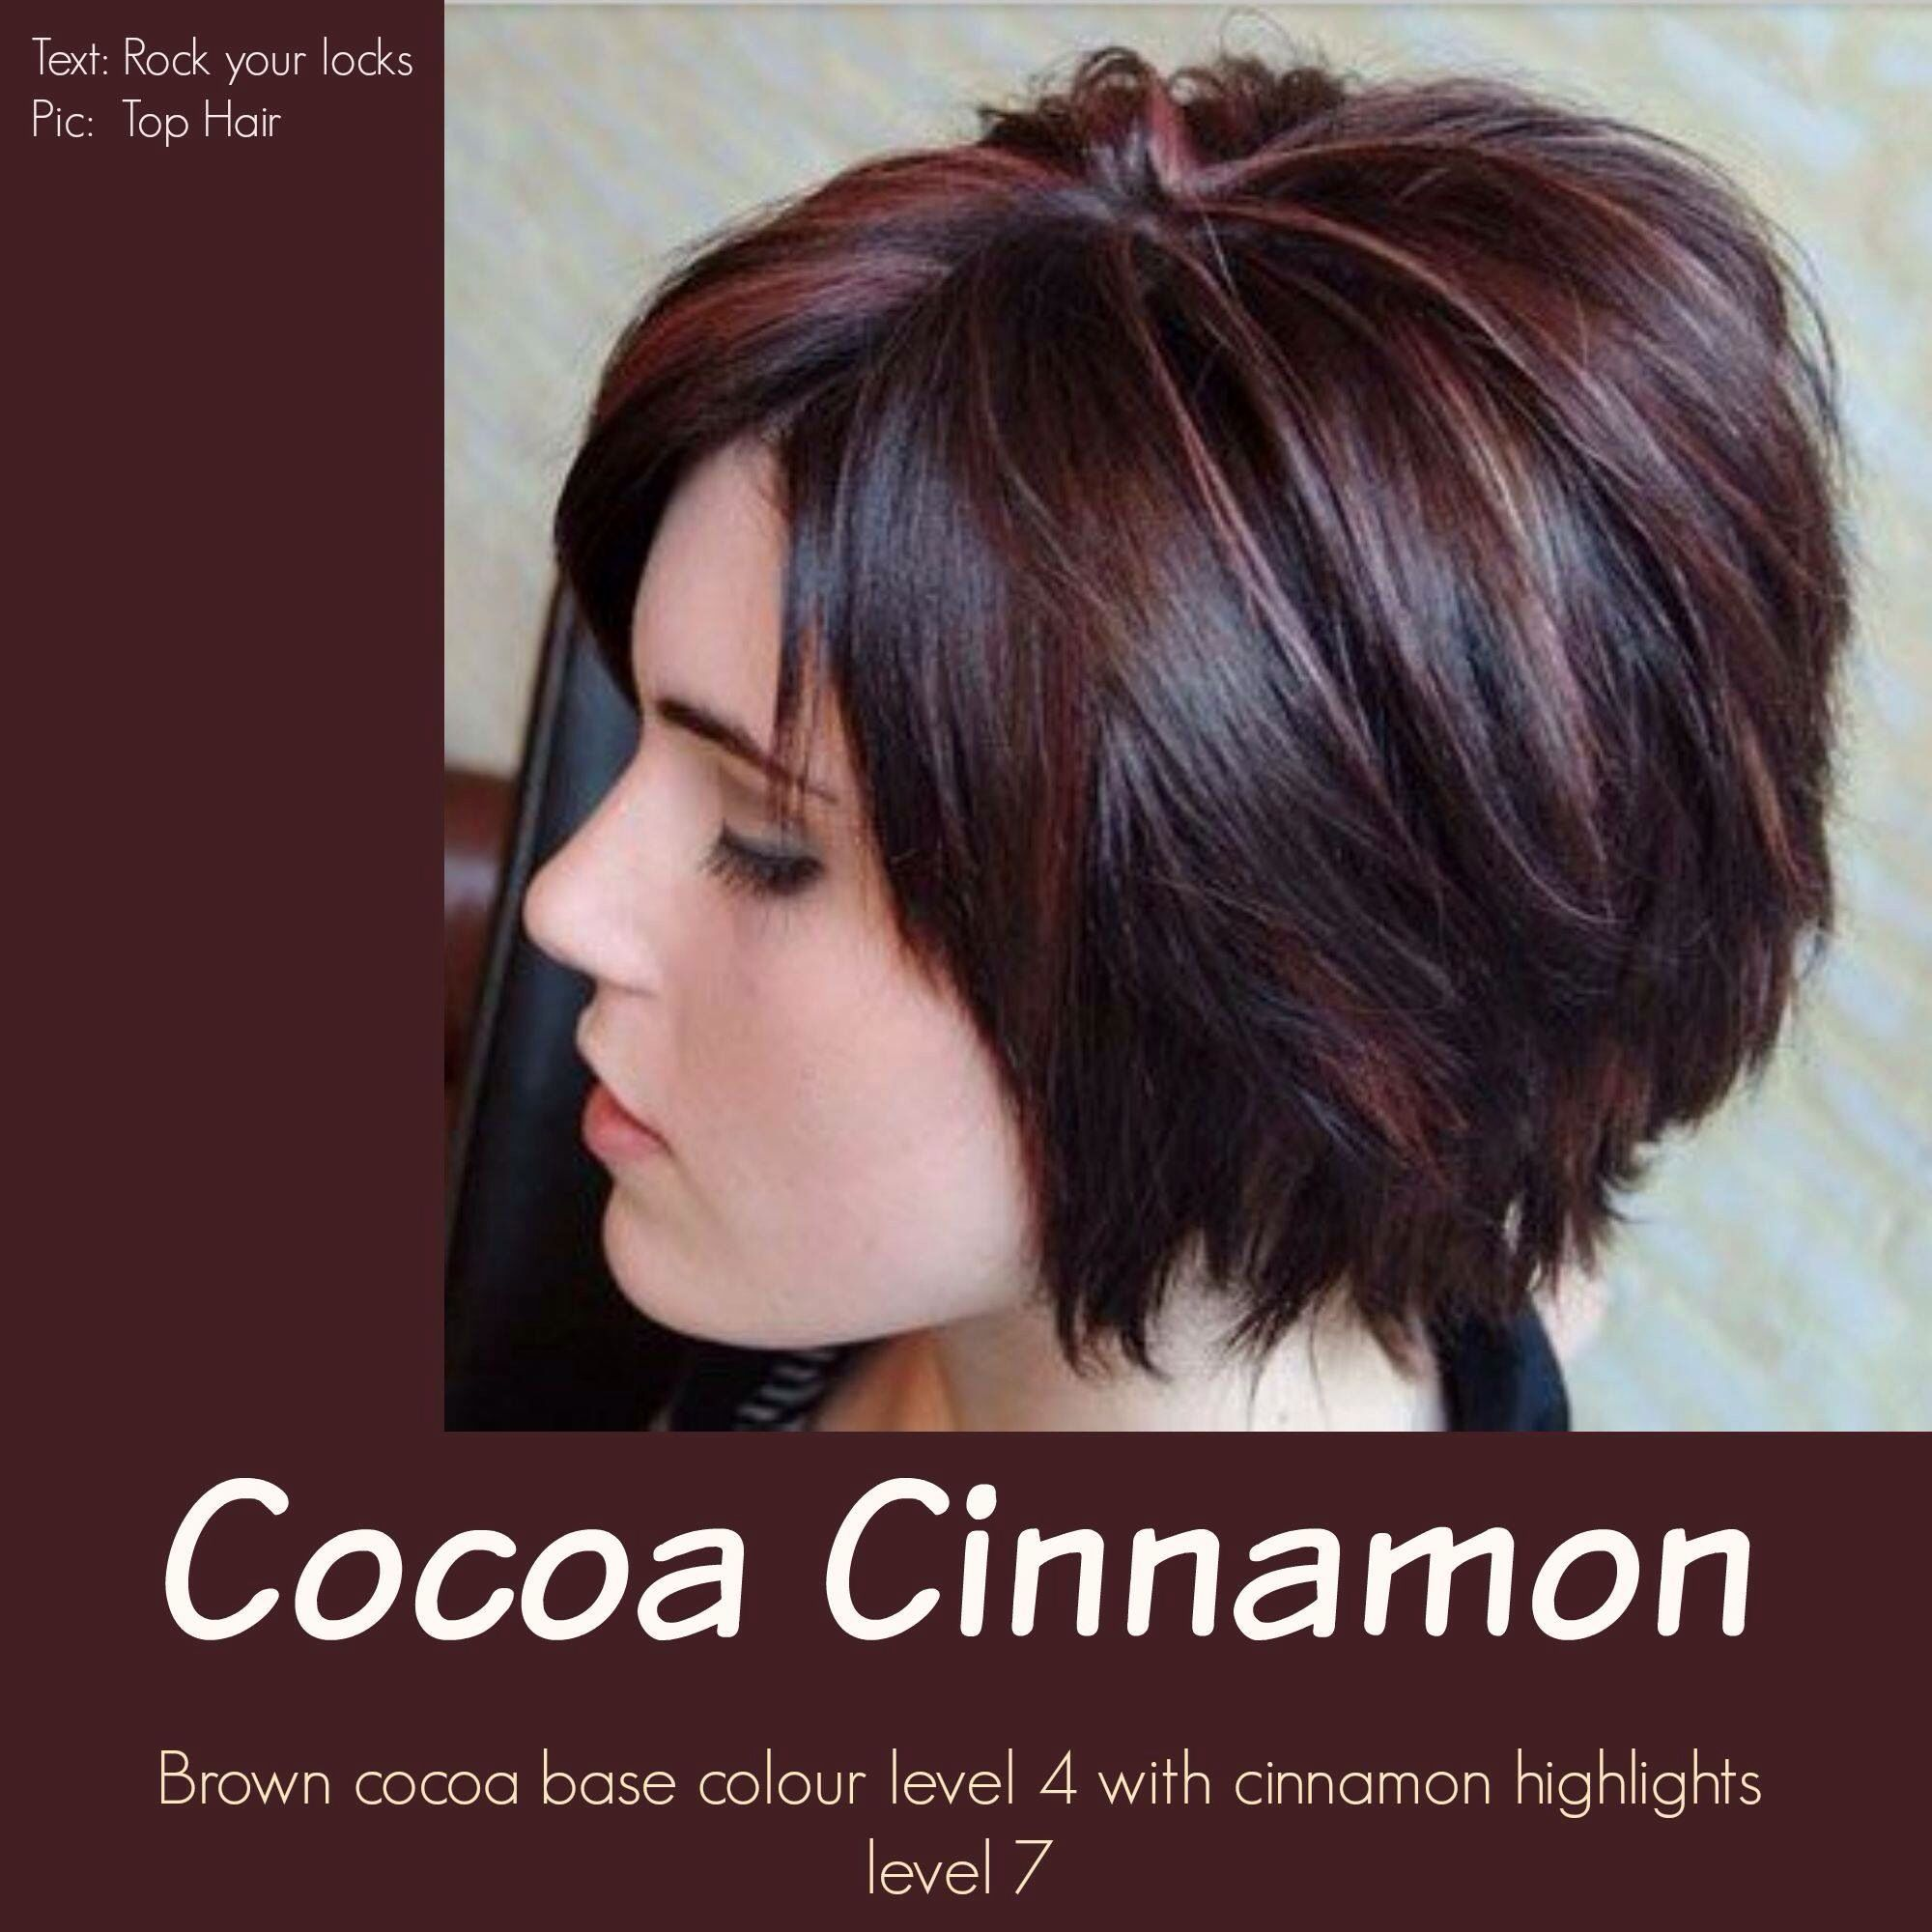 The Ten Steps Needed For Putting Cocoa Cinnamon Hair Color Into